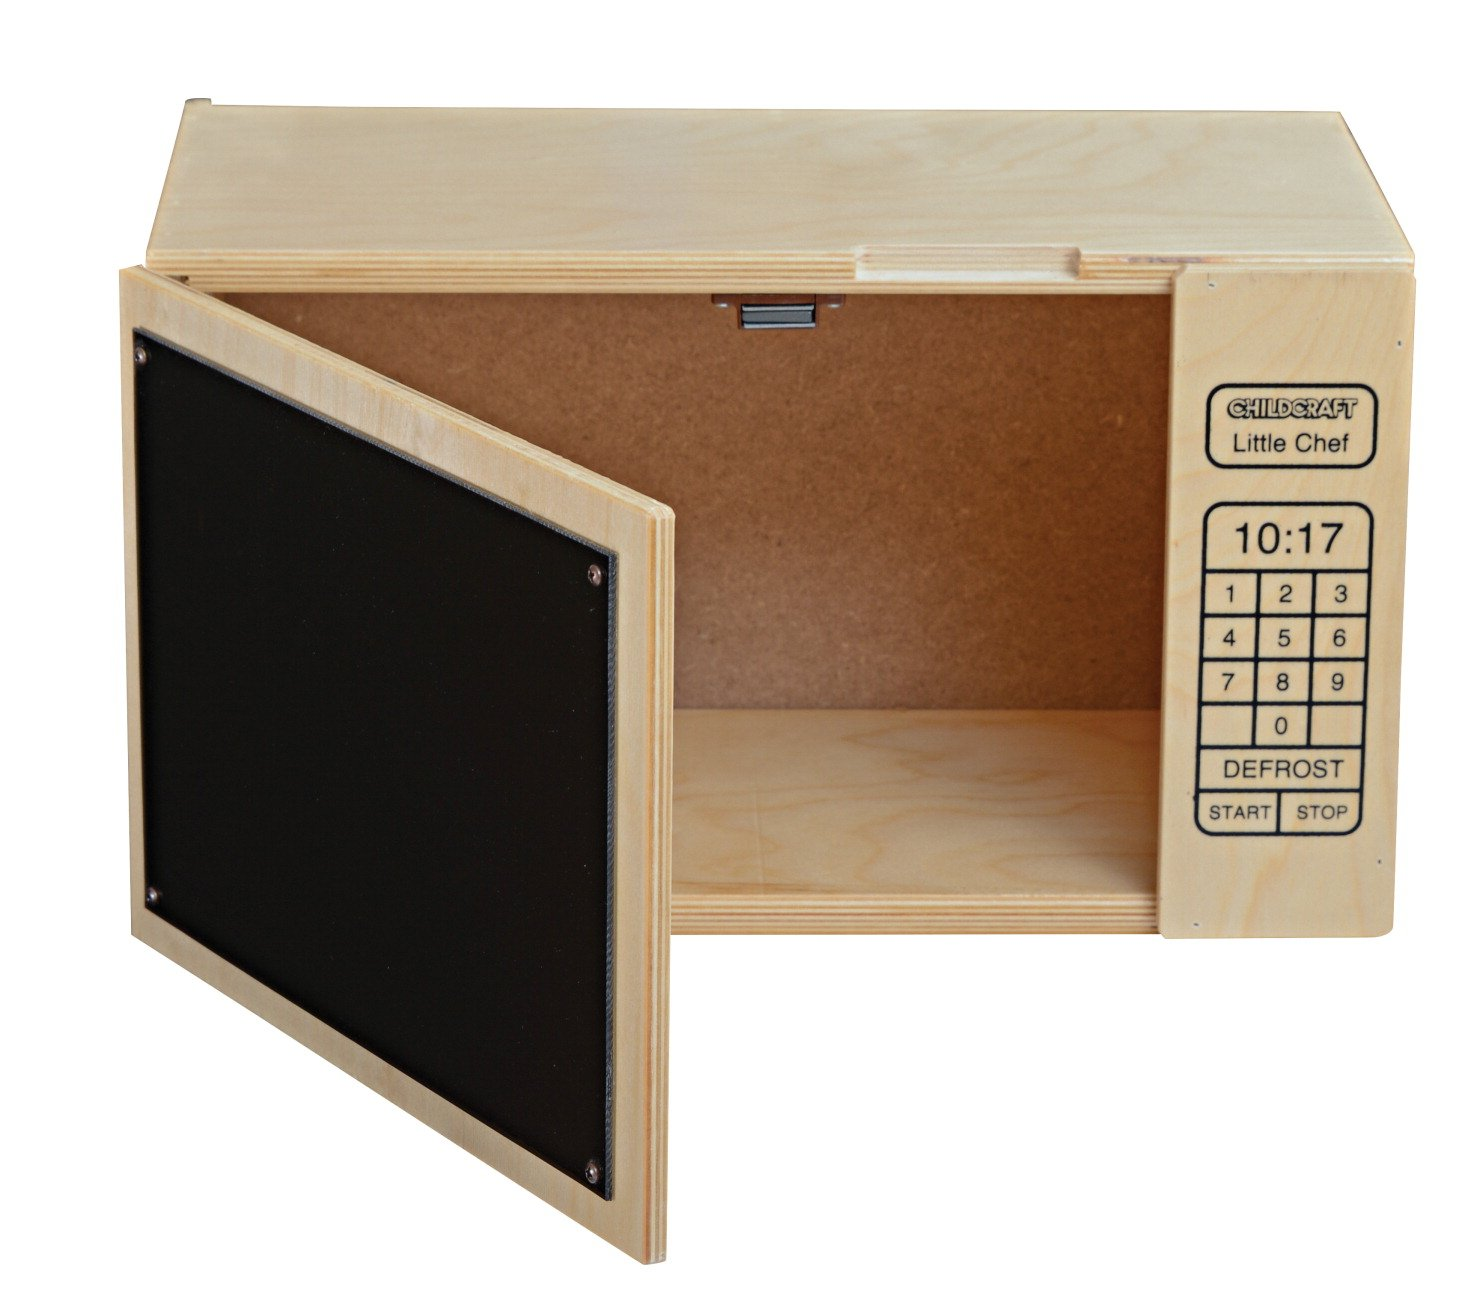 """Childcraft 074963 Kitchen Play Little Chef Microwave Oven, 17"""" x 9"""" x 9-3/4"""", Natural Wood Tone"""